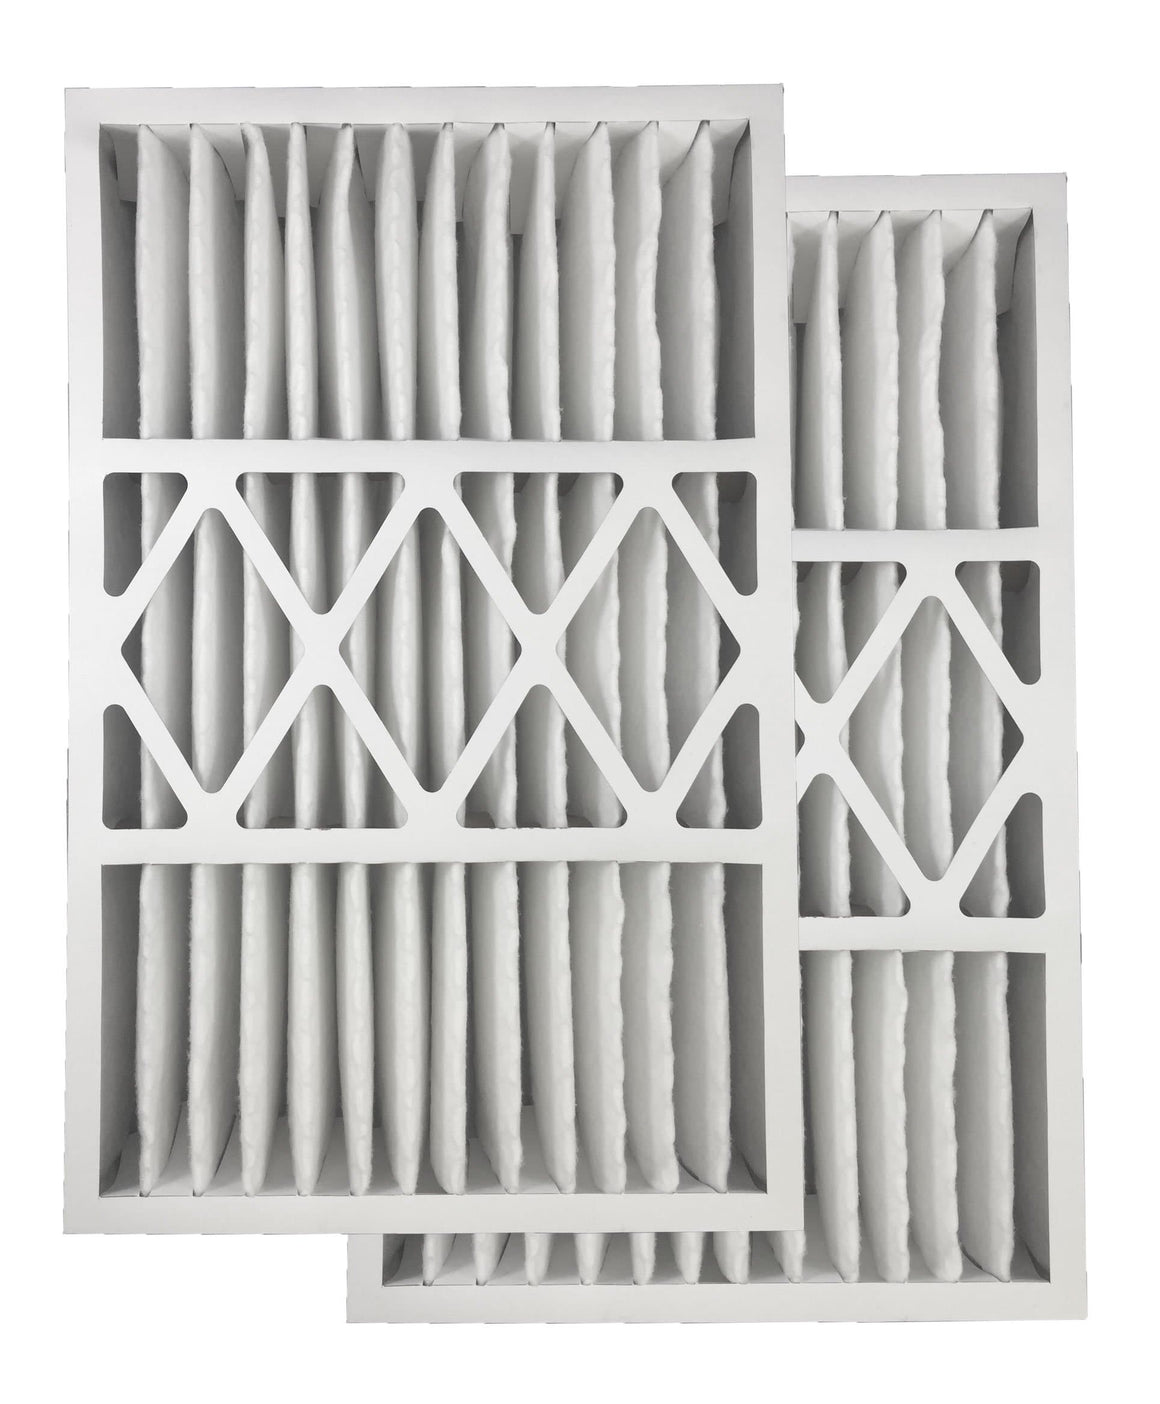 Atomic FC100A1003 16x20x5 Honeywell Replacement MERV 11 Furnace Filter - 2 Pack